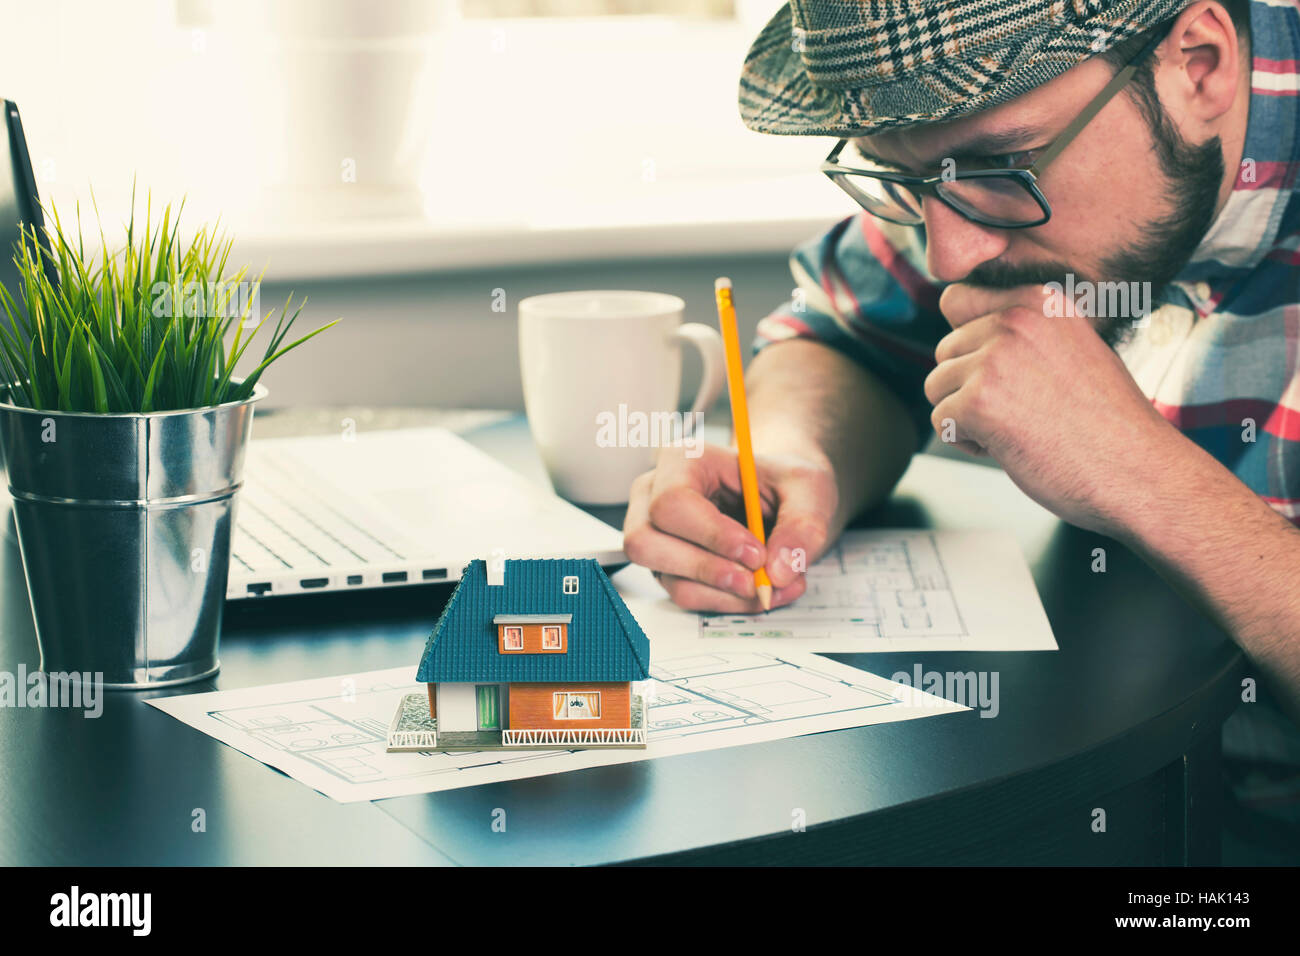 architect, construction engineer working on new house project at office - Stock Image